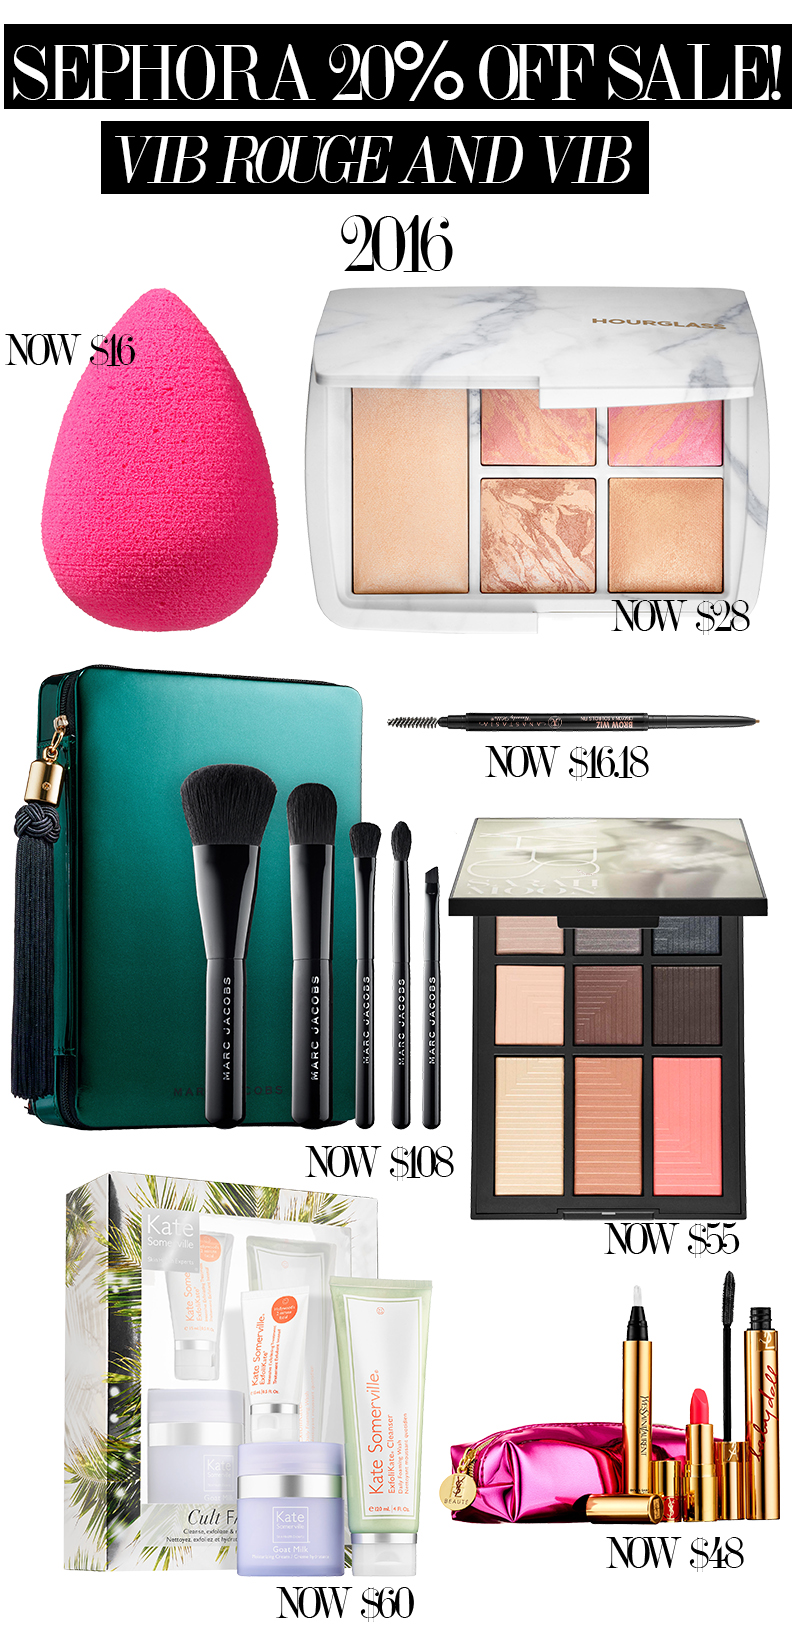 Sephora VIB Rouge and VIB 20% off sale starts now! Get the coupon code and shopping list essentials.